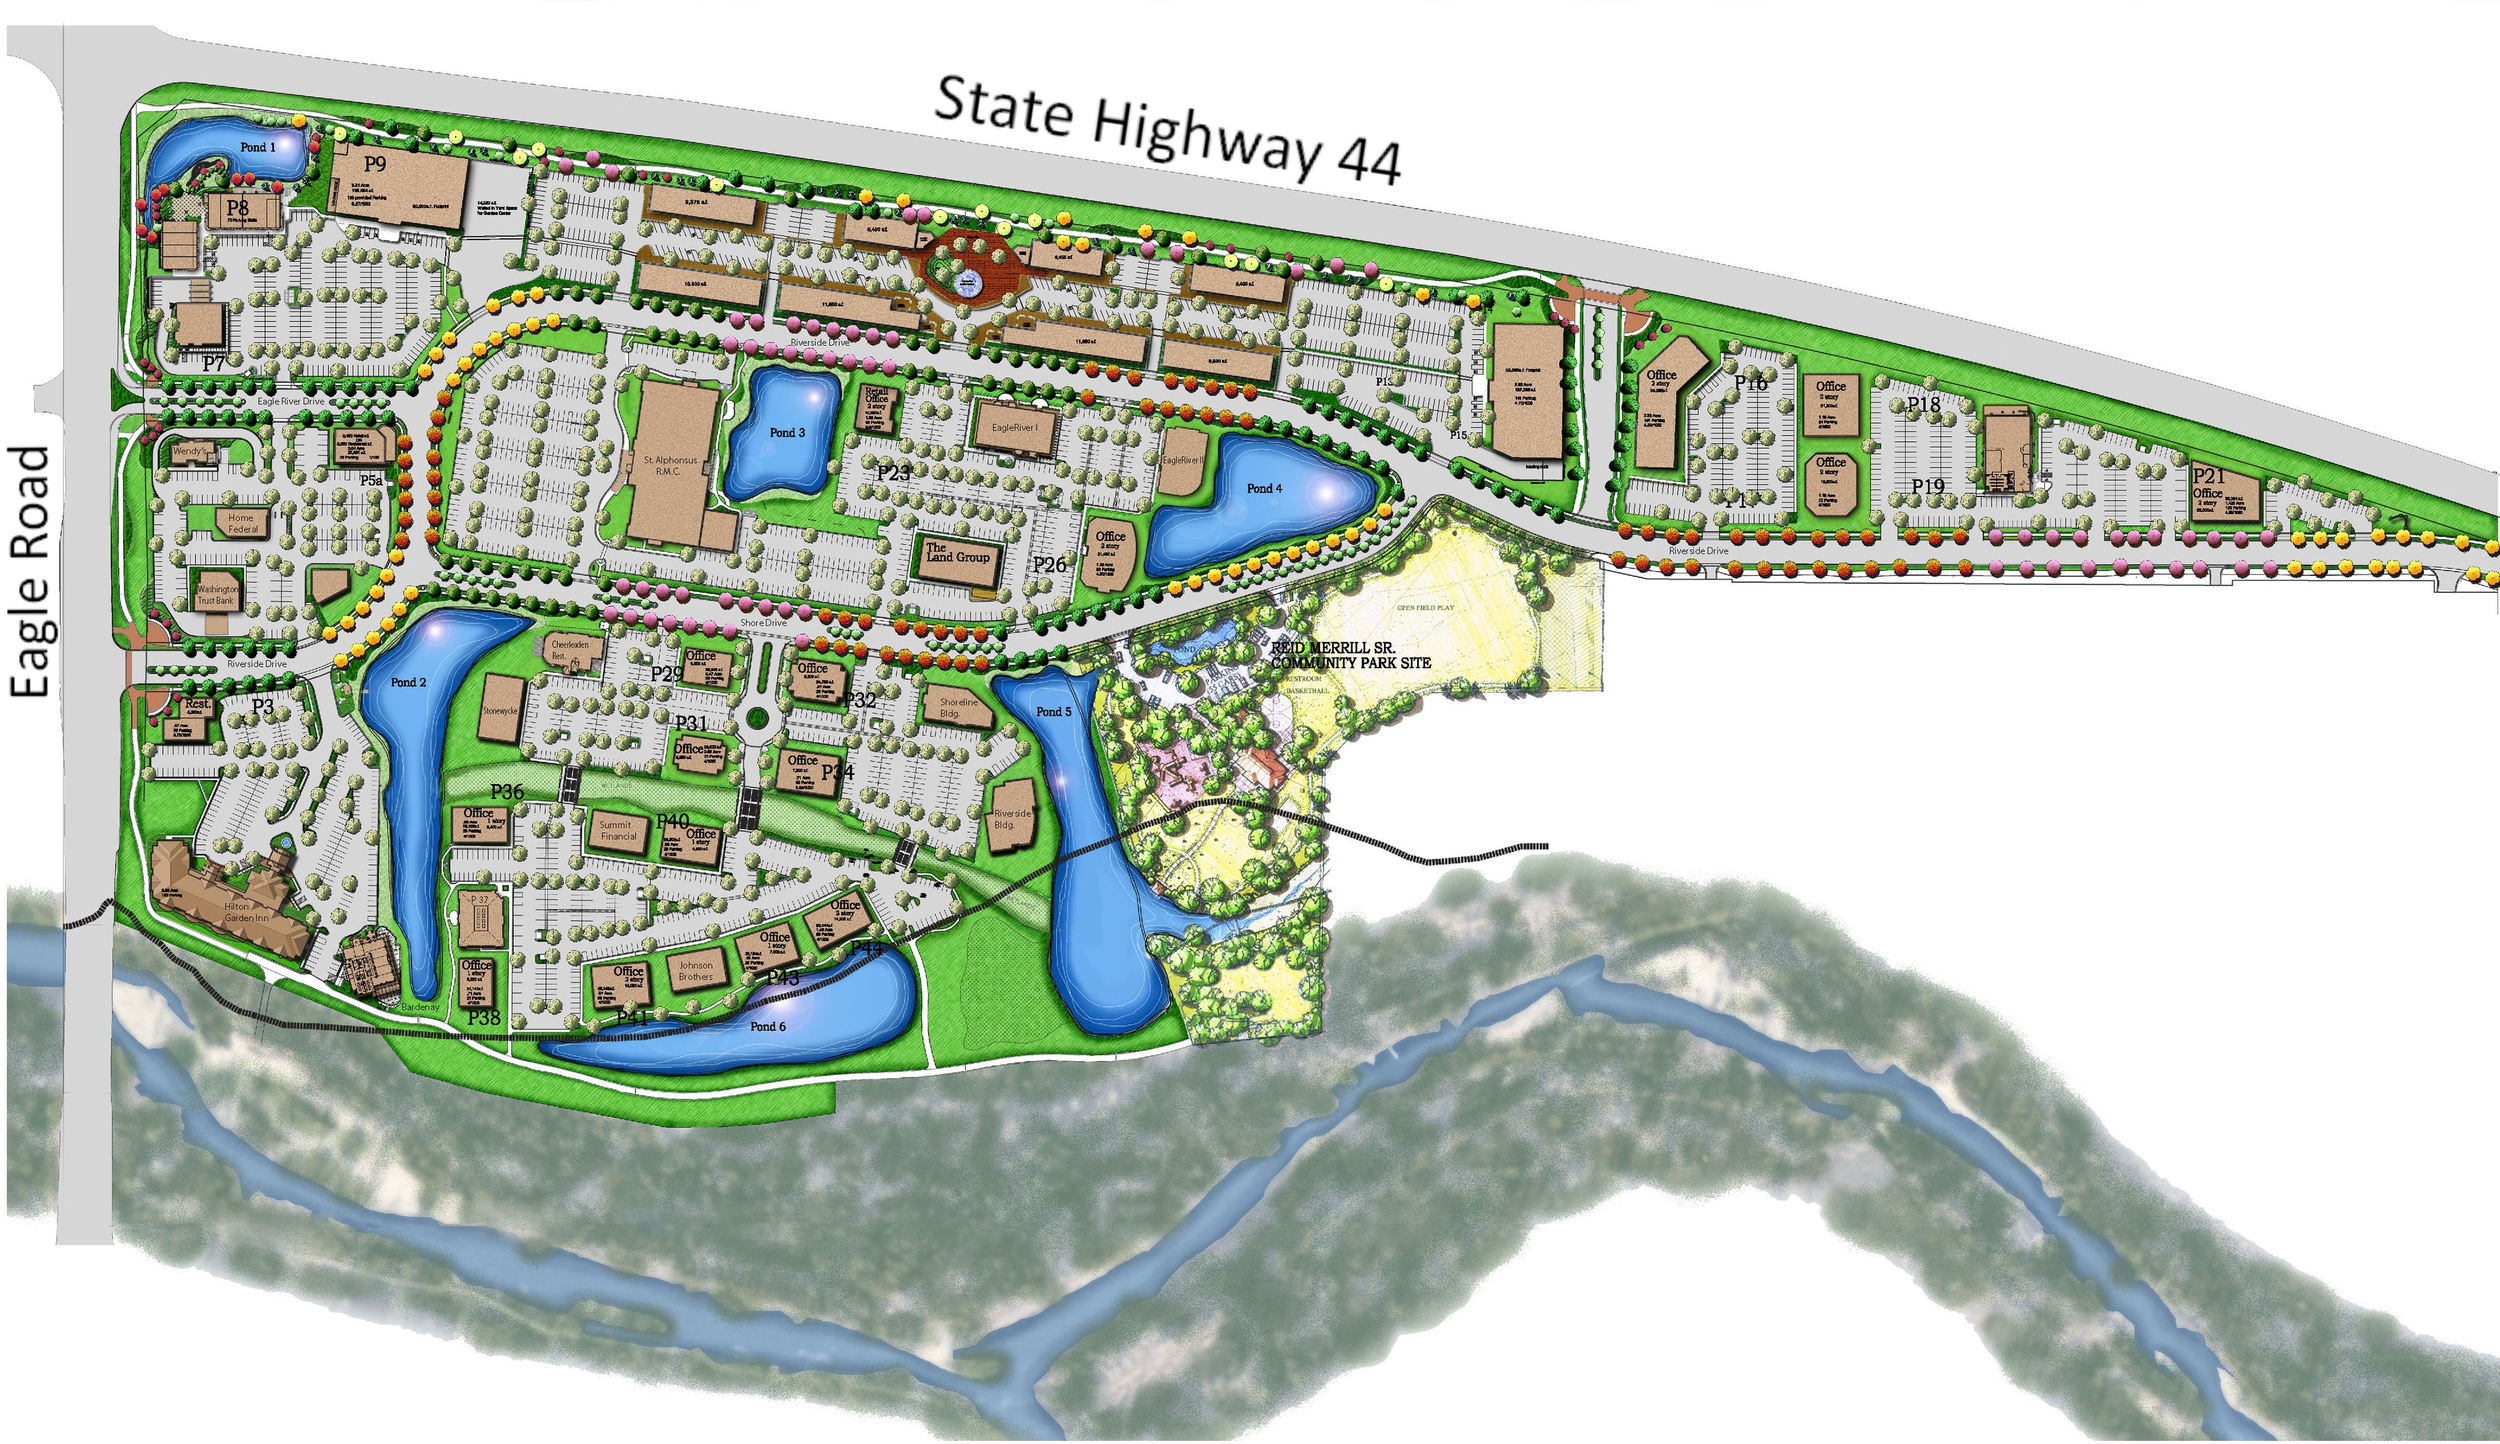 150212 - ER Color Master Plan - CLEAN w SH44 and Eagle Rd.jpg